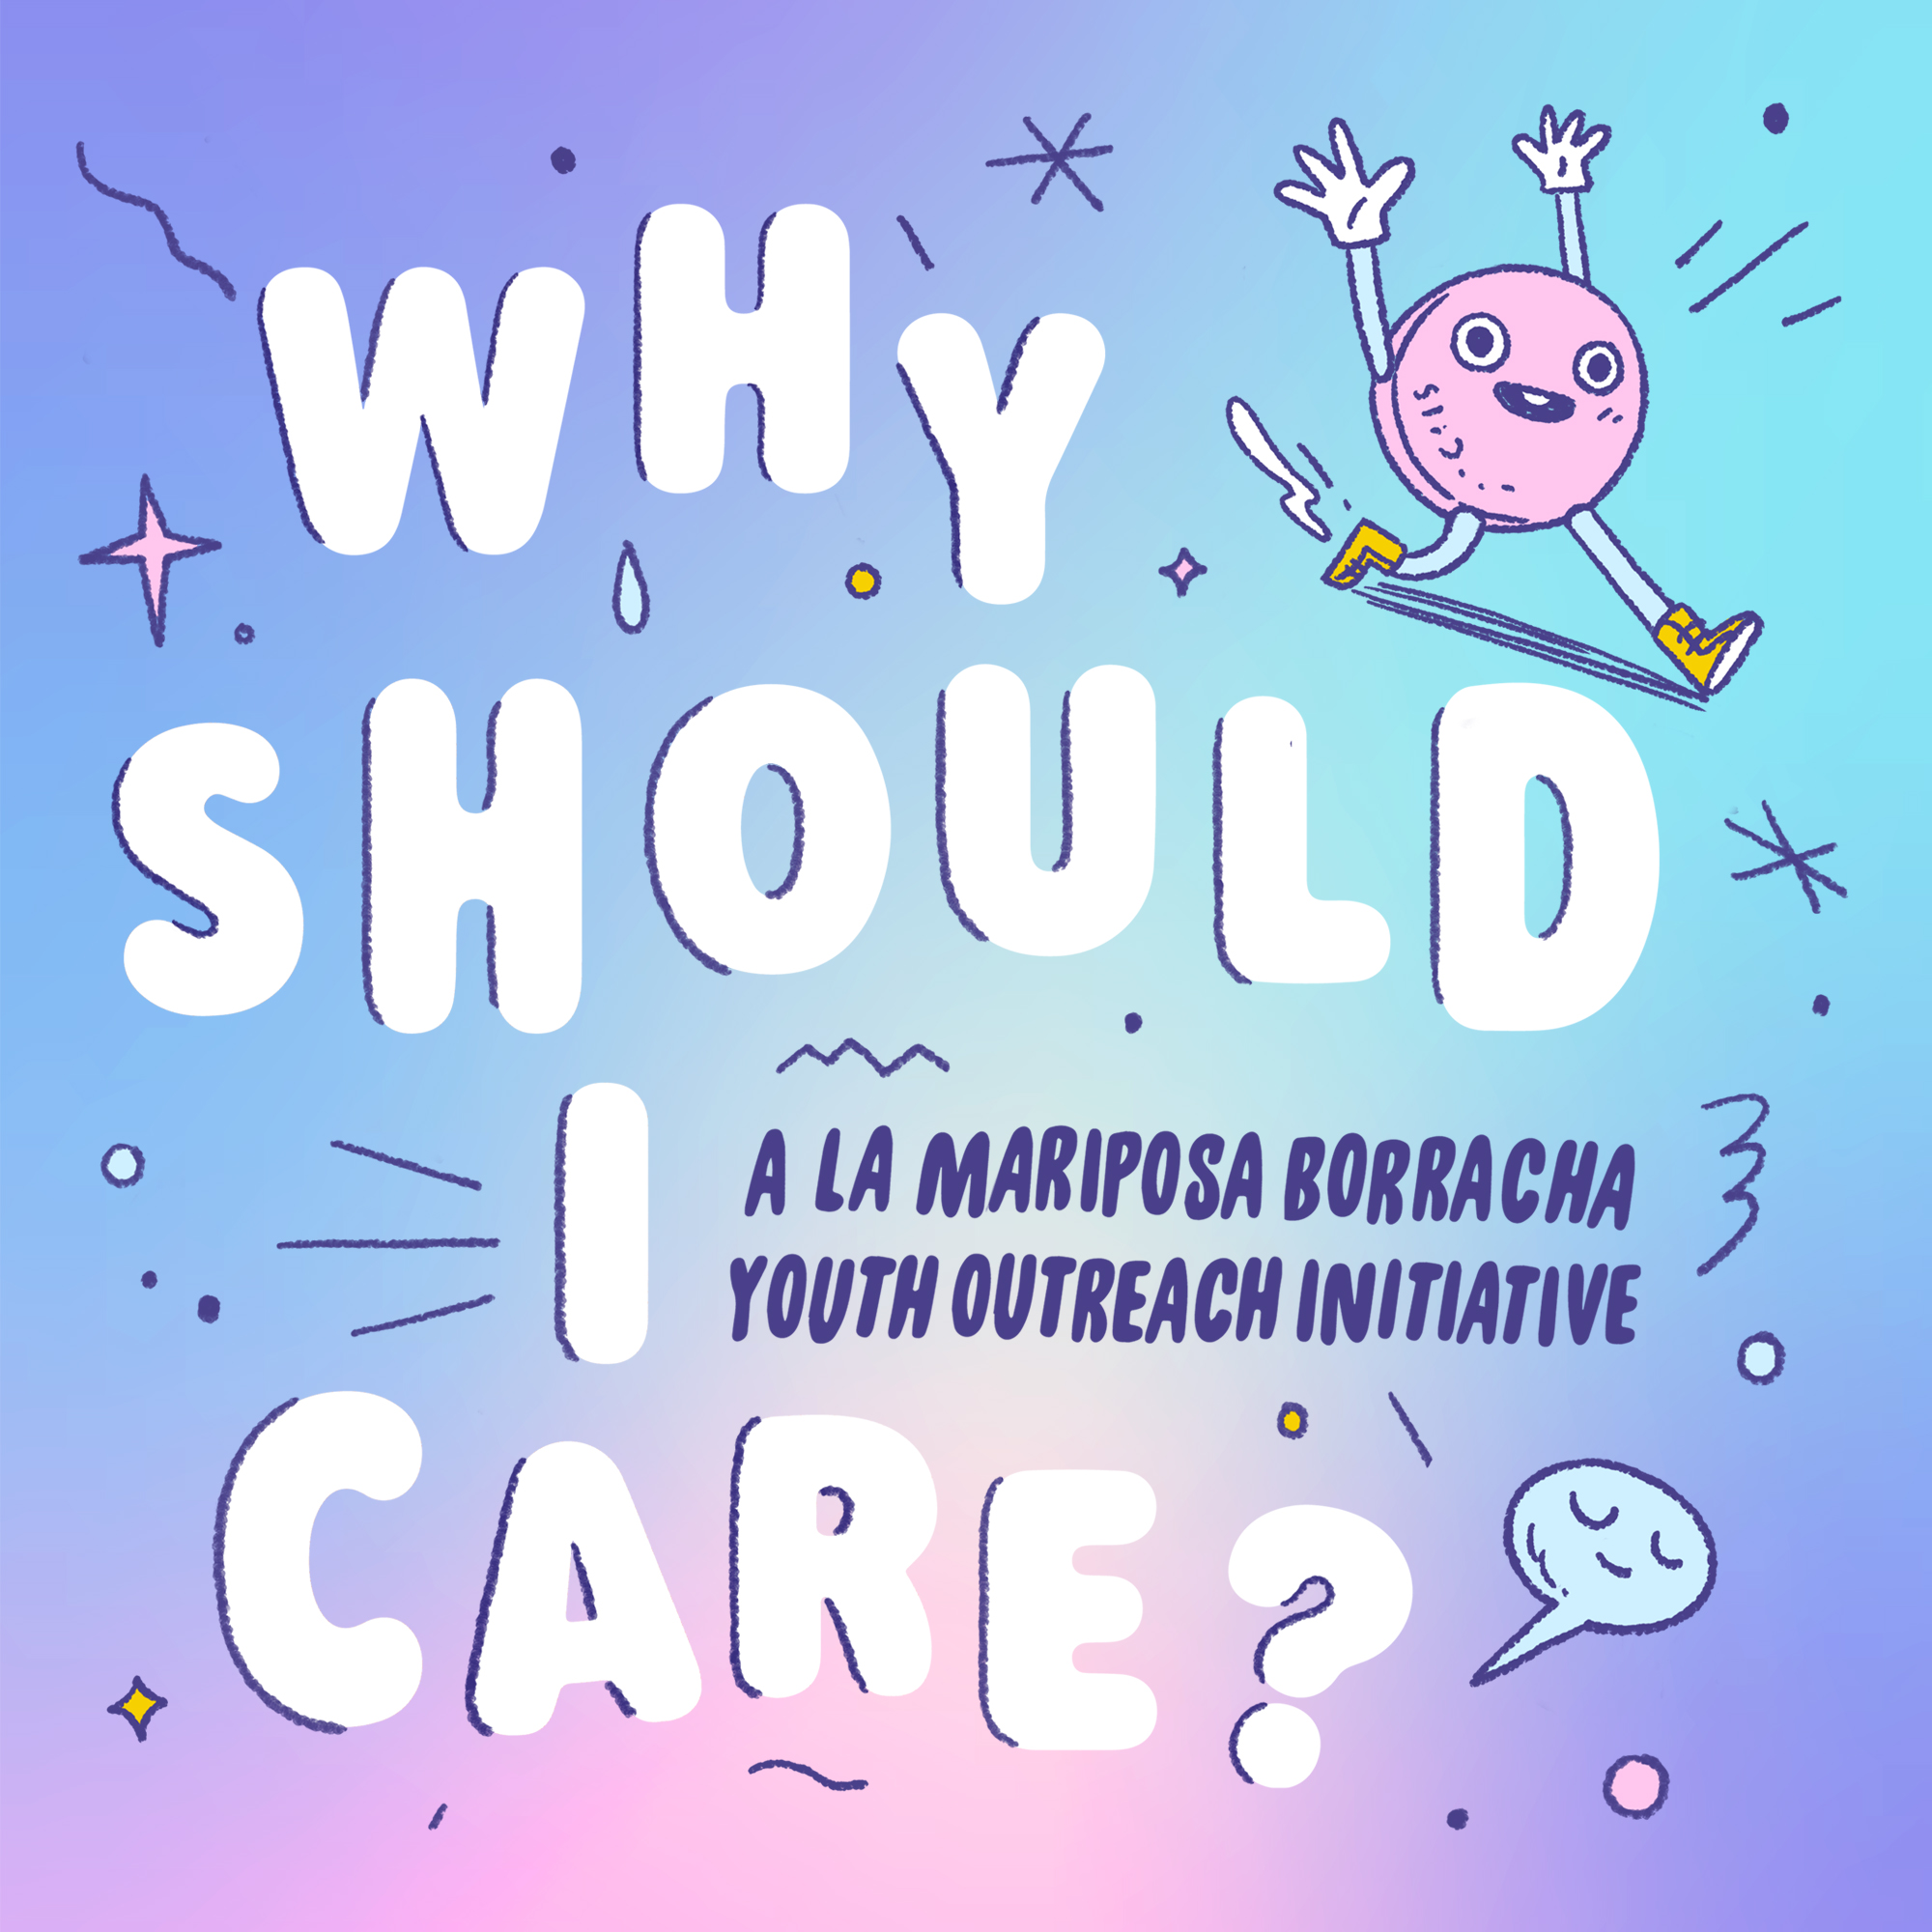 La Mariposa Borracha Outreach Initiatives - WHY SHOULD I CARE? is an engagement programme created in conjunction with the production of La Mariposa Borracha. It is an outreach initiative by youth, for youth, to encourage open dialogues about coping with illness.The dialogue comes in two platforms :